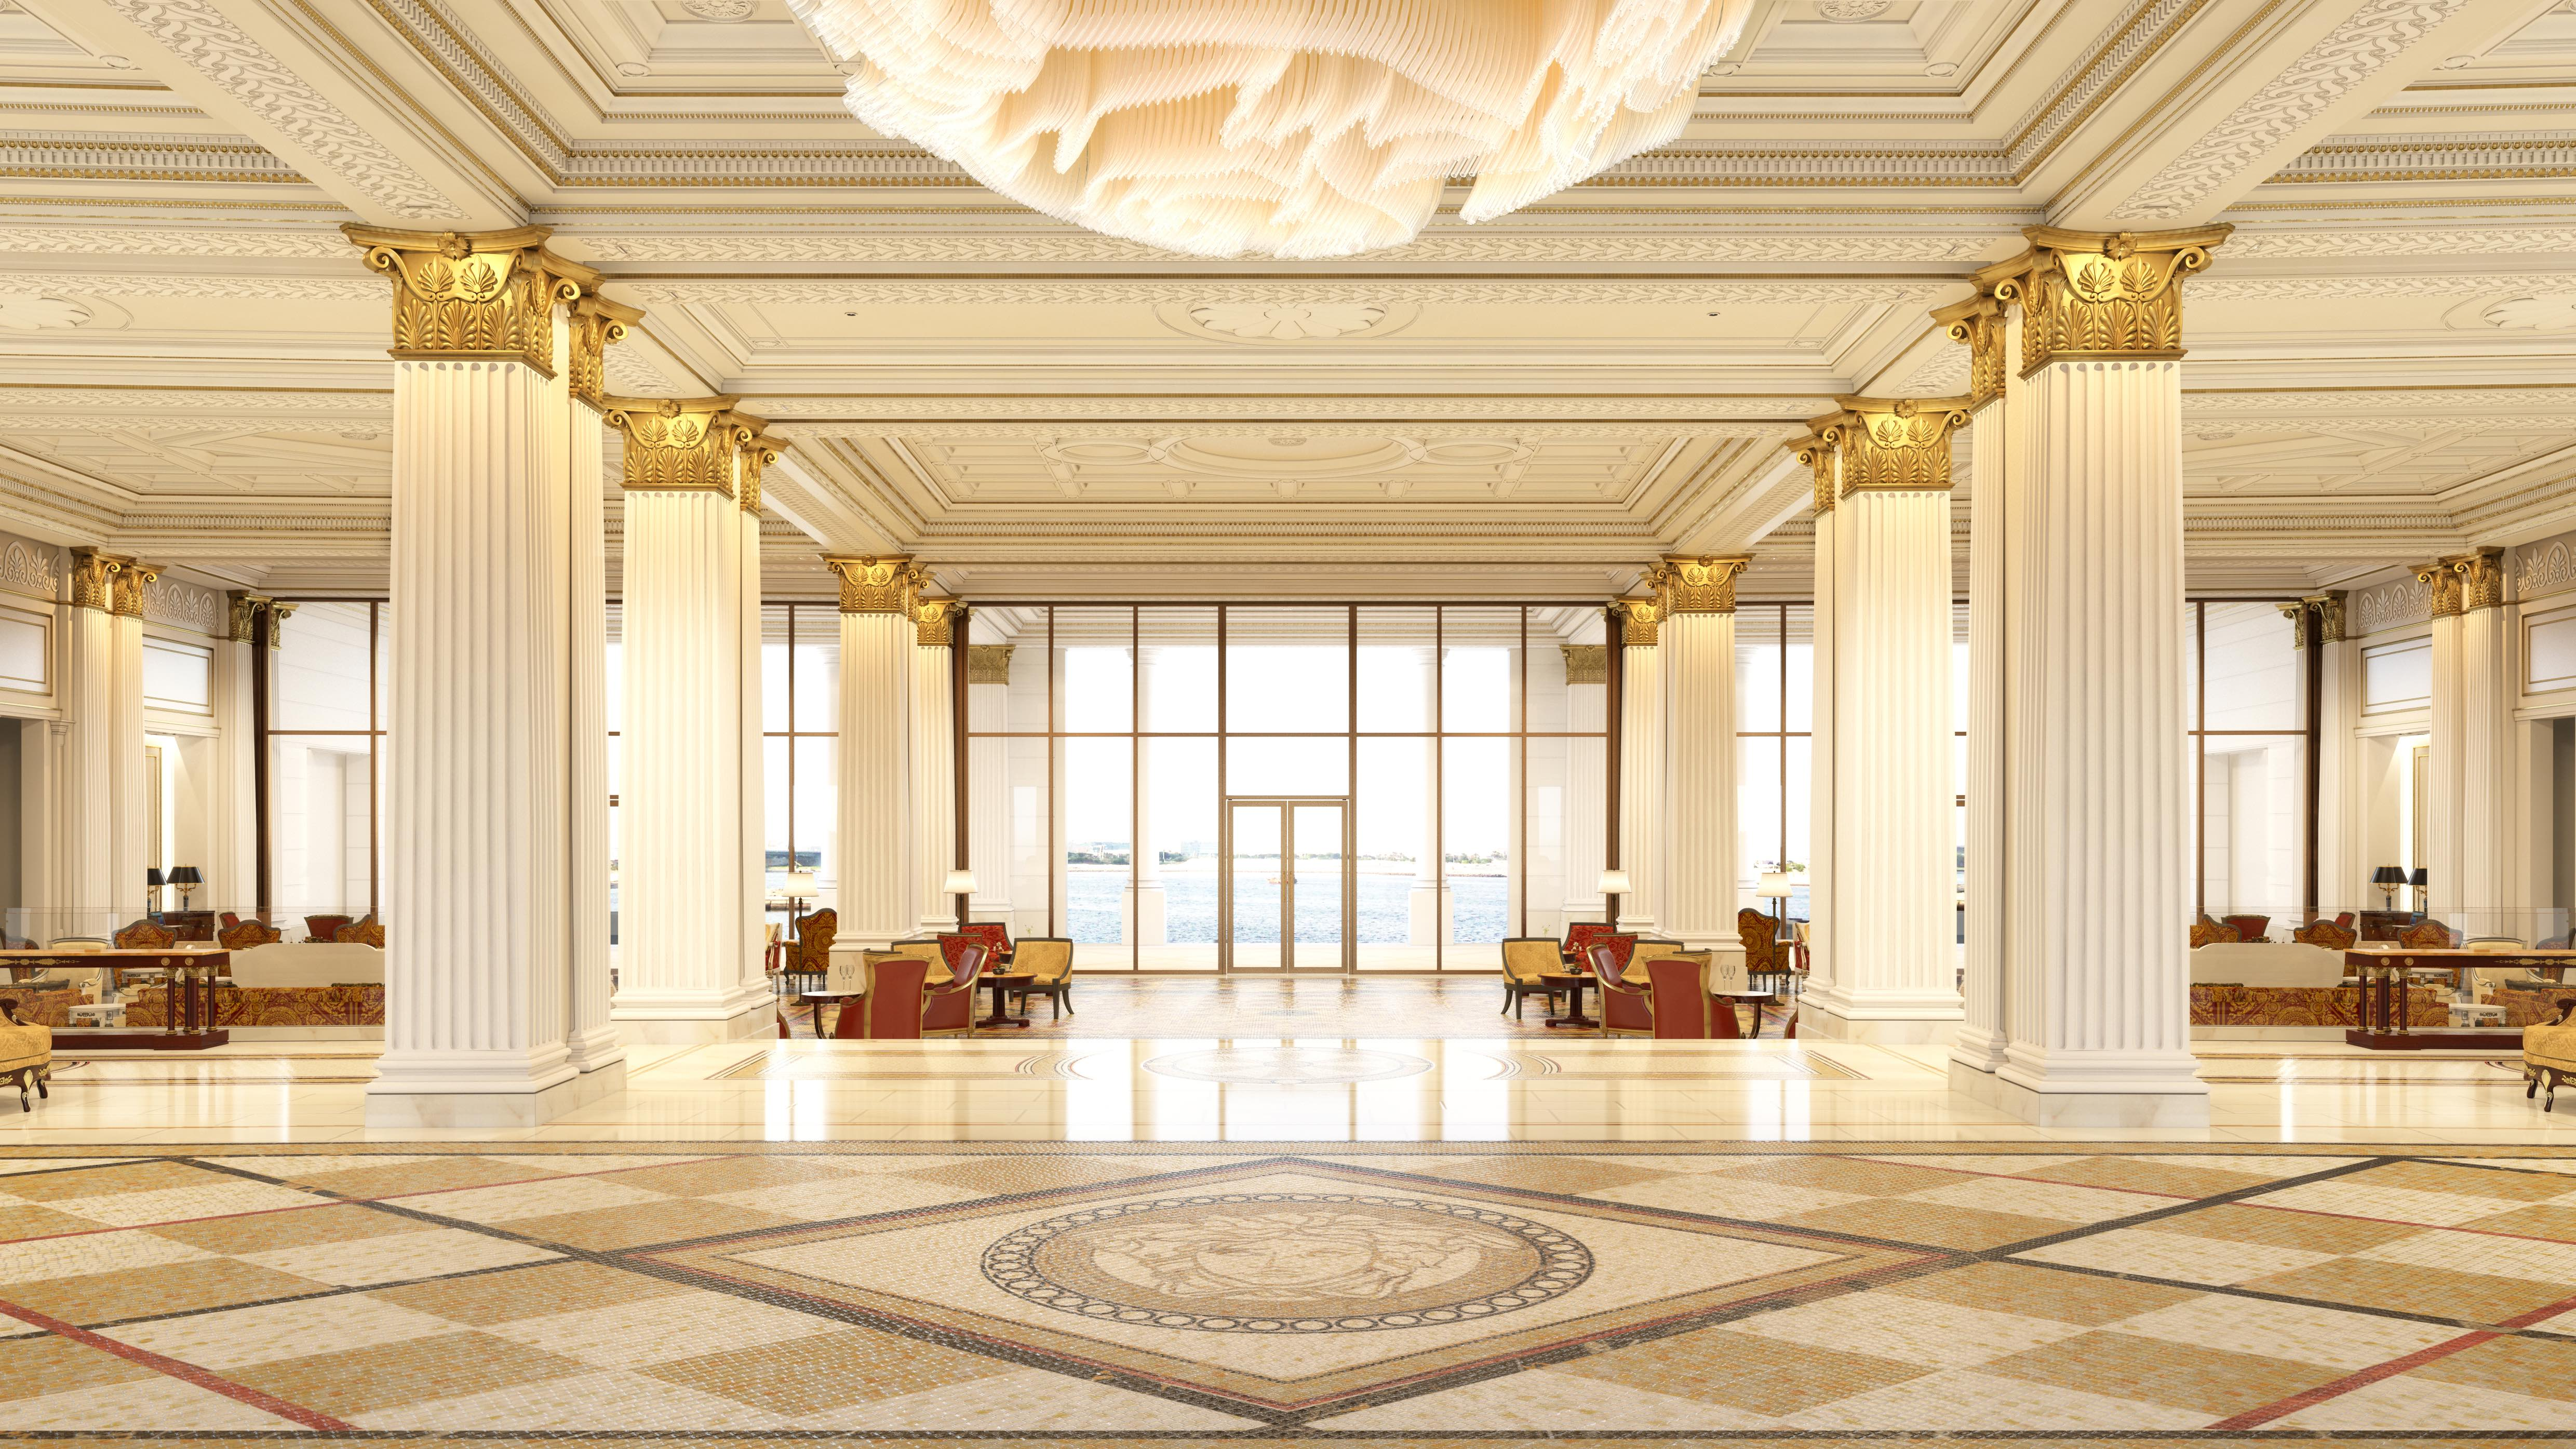 Palazzo versace dubai set to open invoyage for Luxury home collection